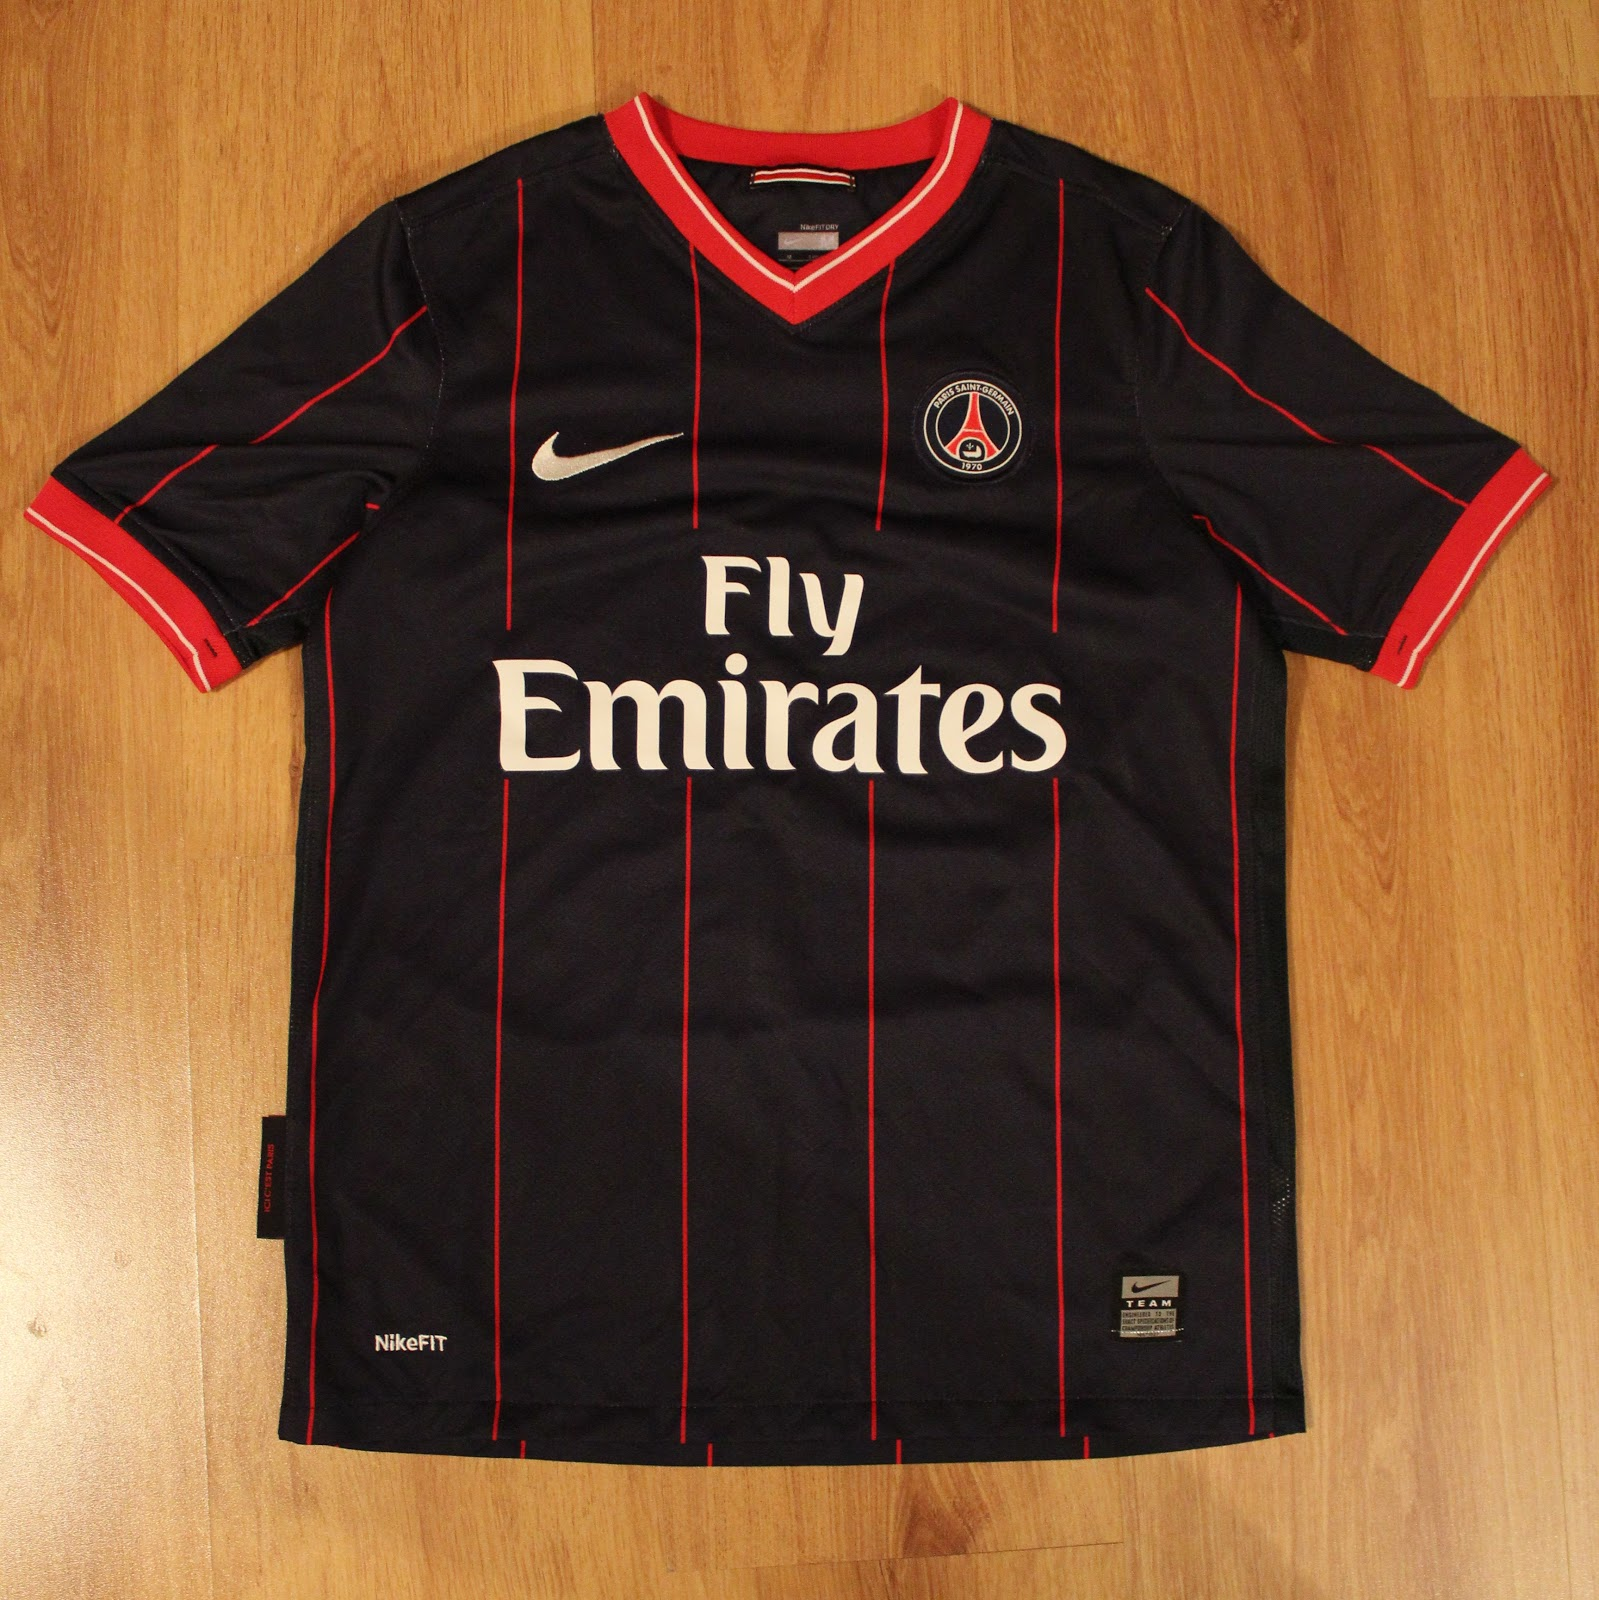 timeless design 0b56a 42978 Solana's football shirt collection: PSG 2009/2010 Home Kit